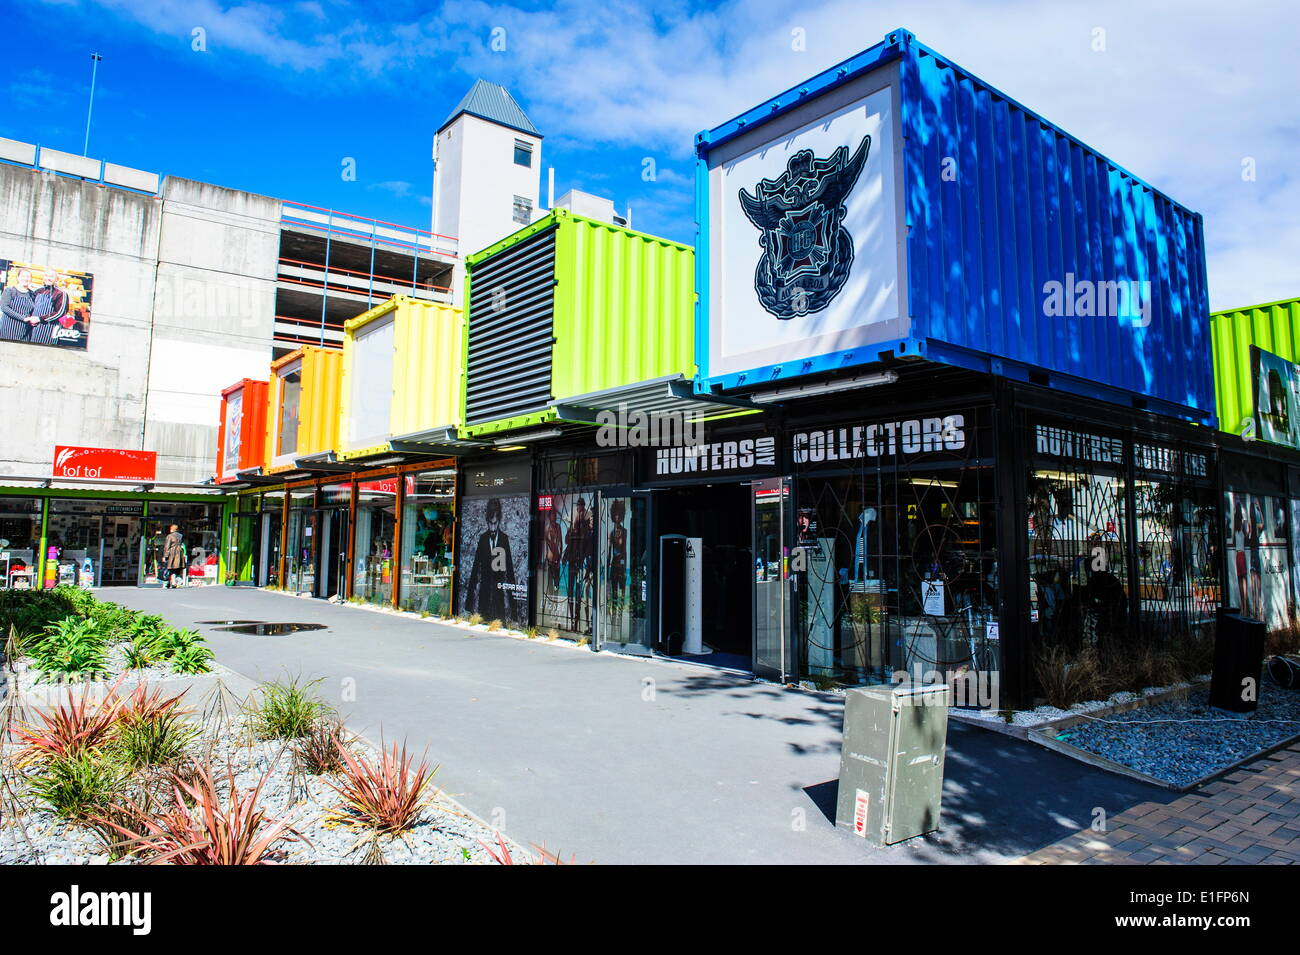 Rebuild center in containers in Christchurch, Canterbury, South Island, New Zealand, Pacific - Stock Image